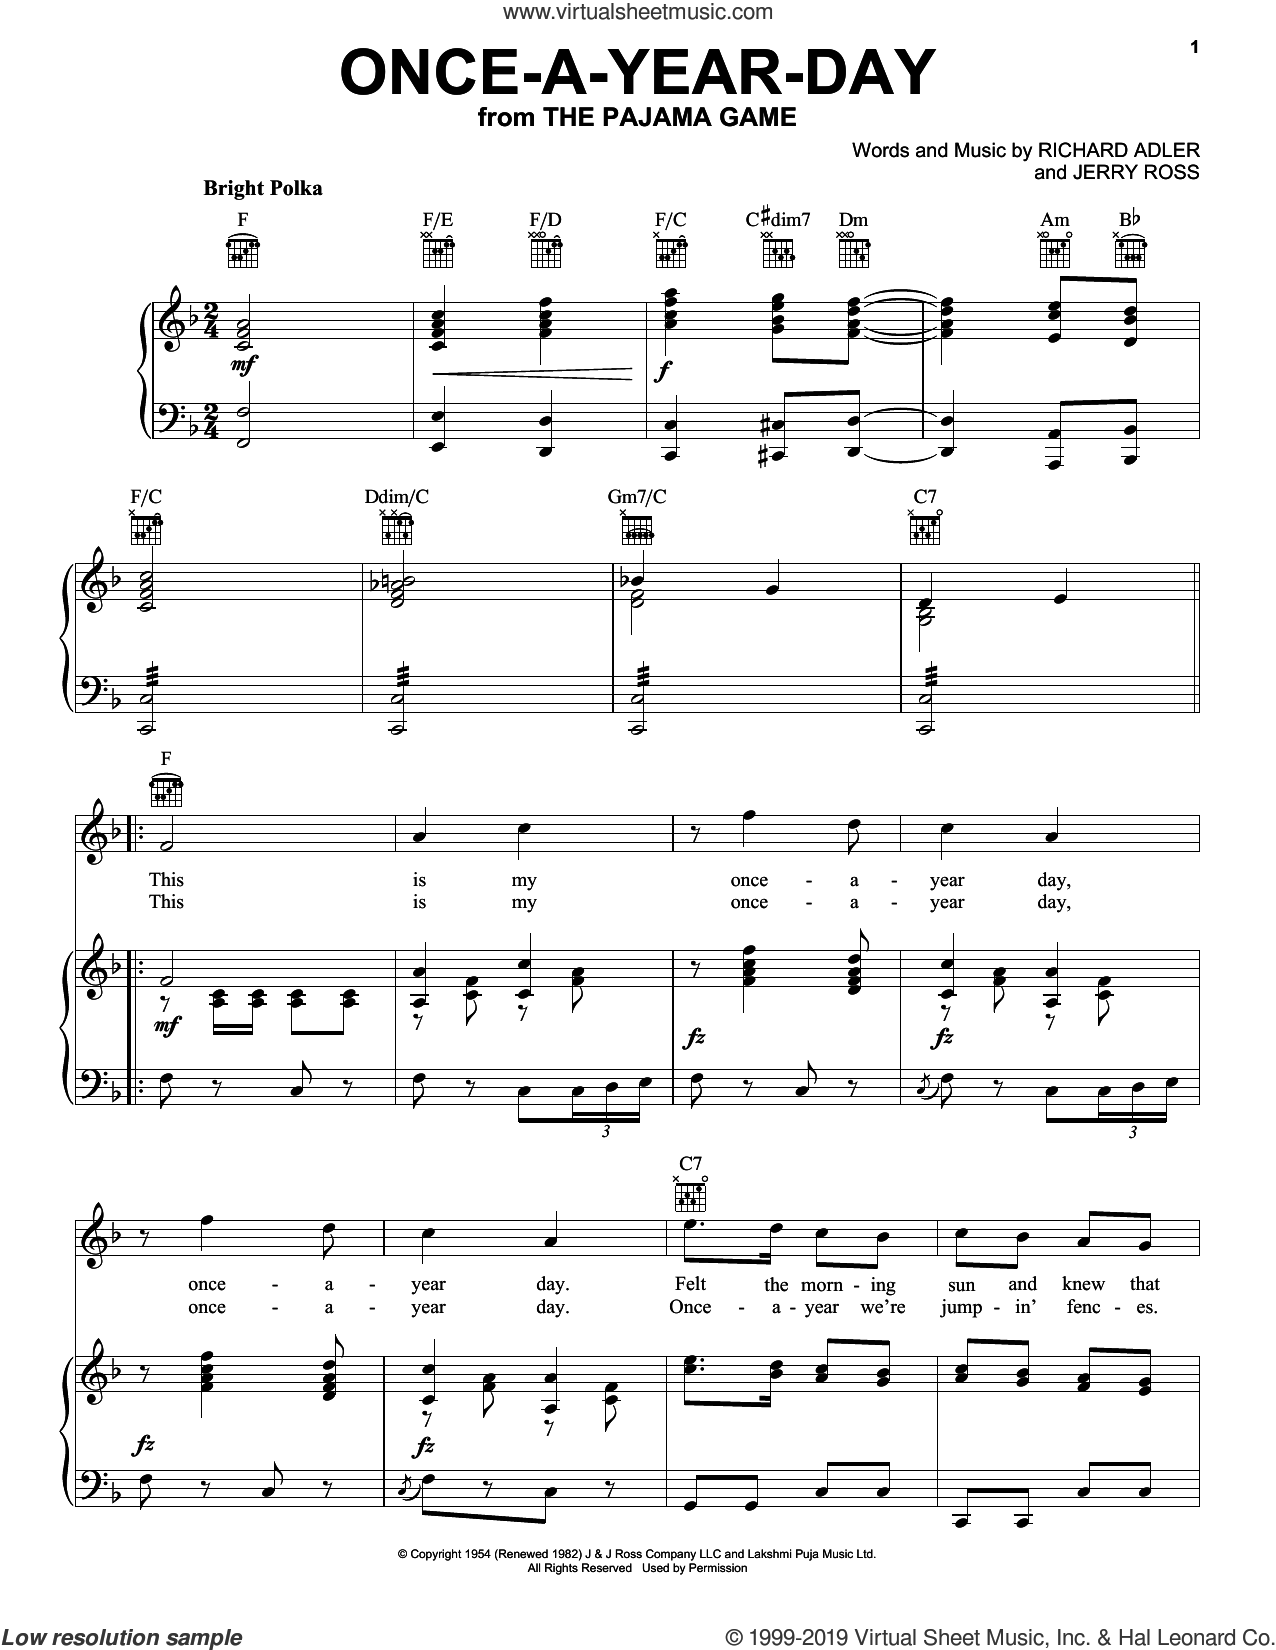 Once-A-Year-Day sheet music for voice, piano or guitar by Adler & Ross, Jerry Ross and Richard Adler, intermediate skill level